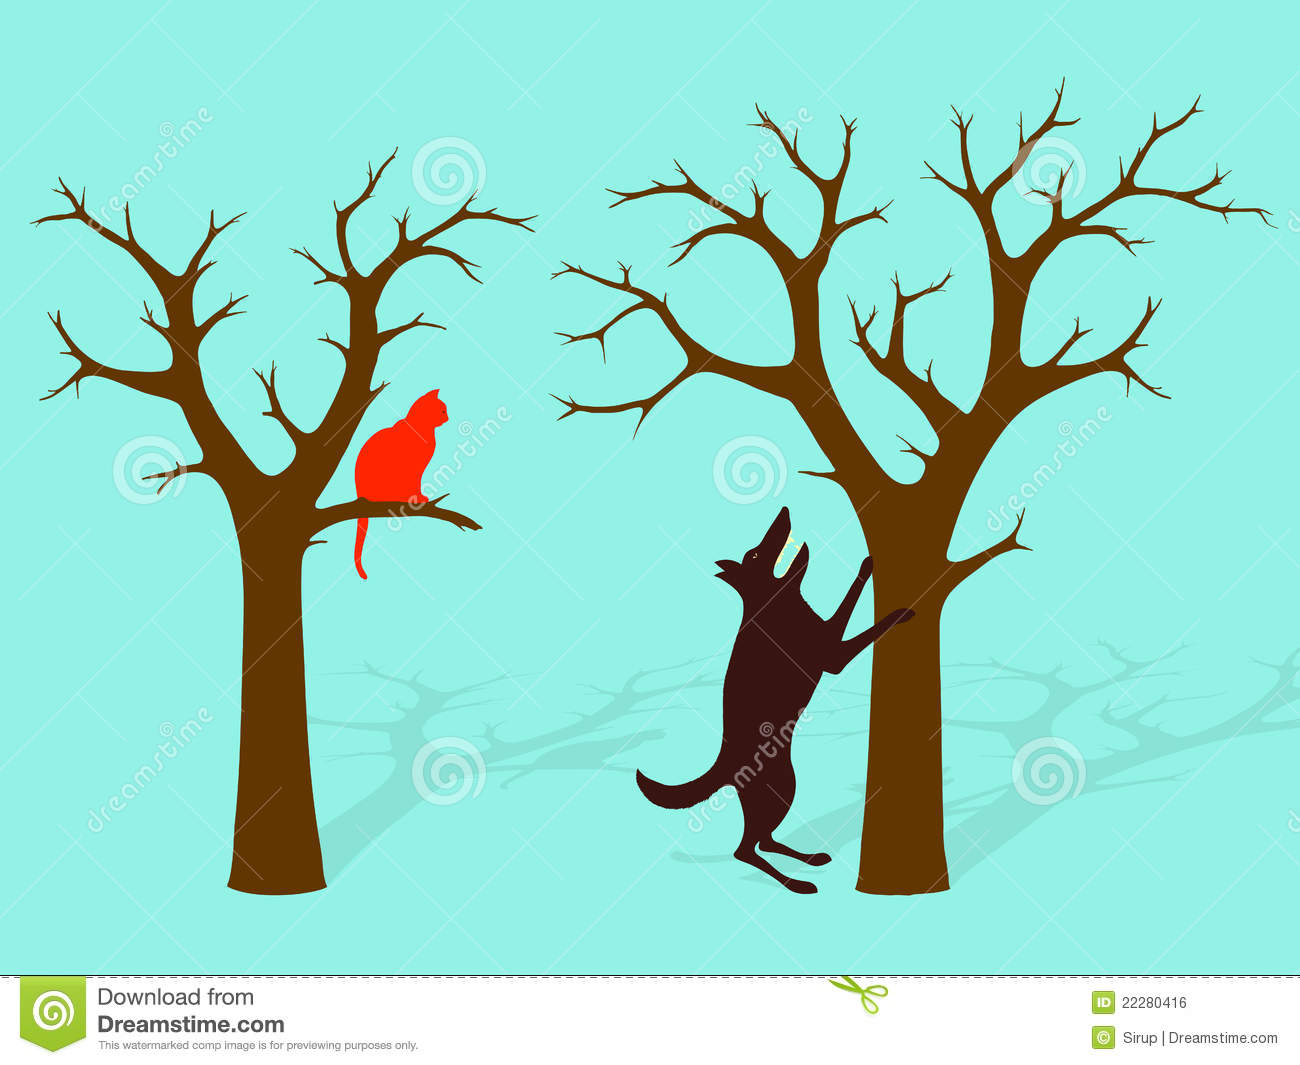 Dog Barking At Cat In Tree